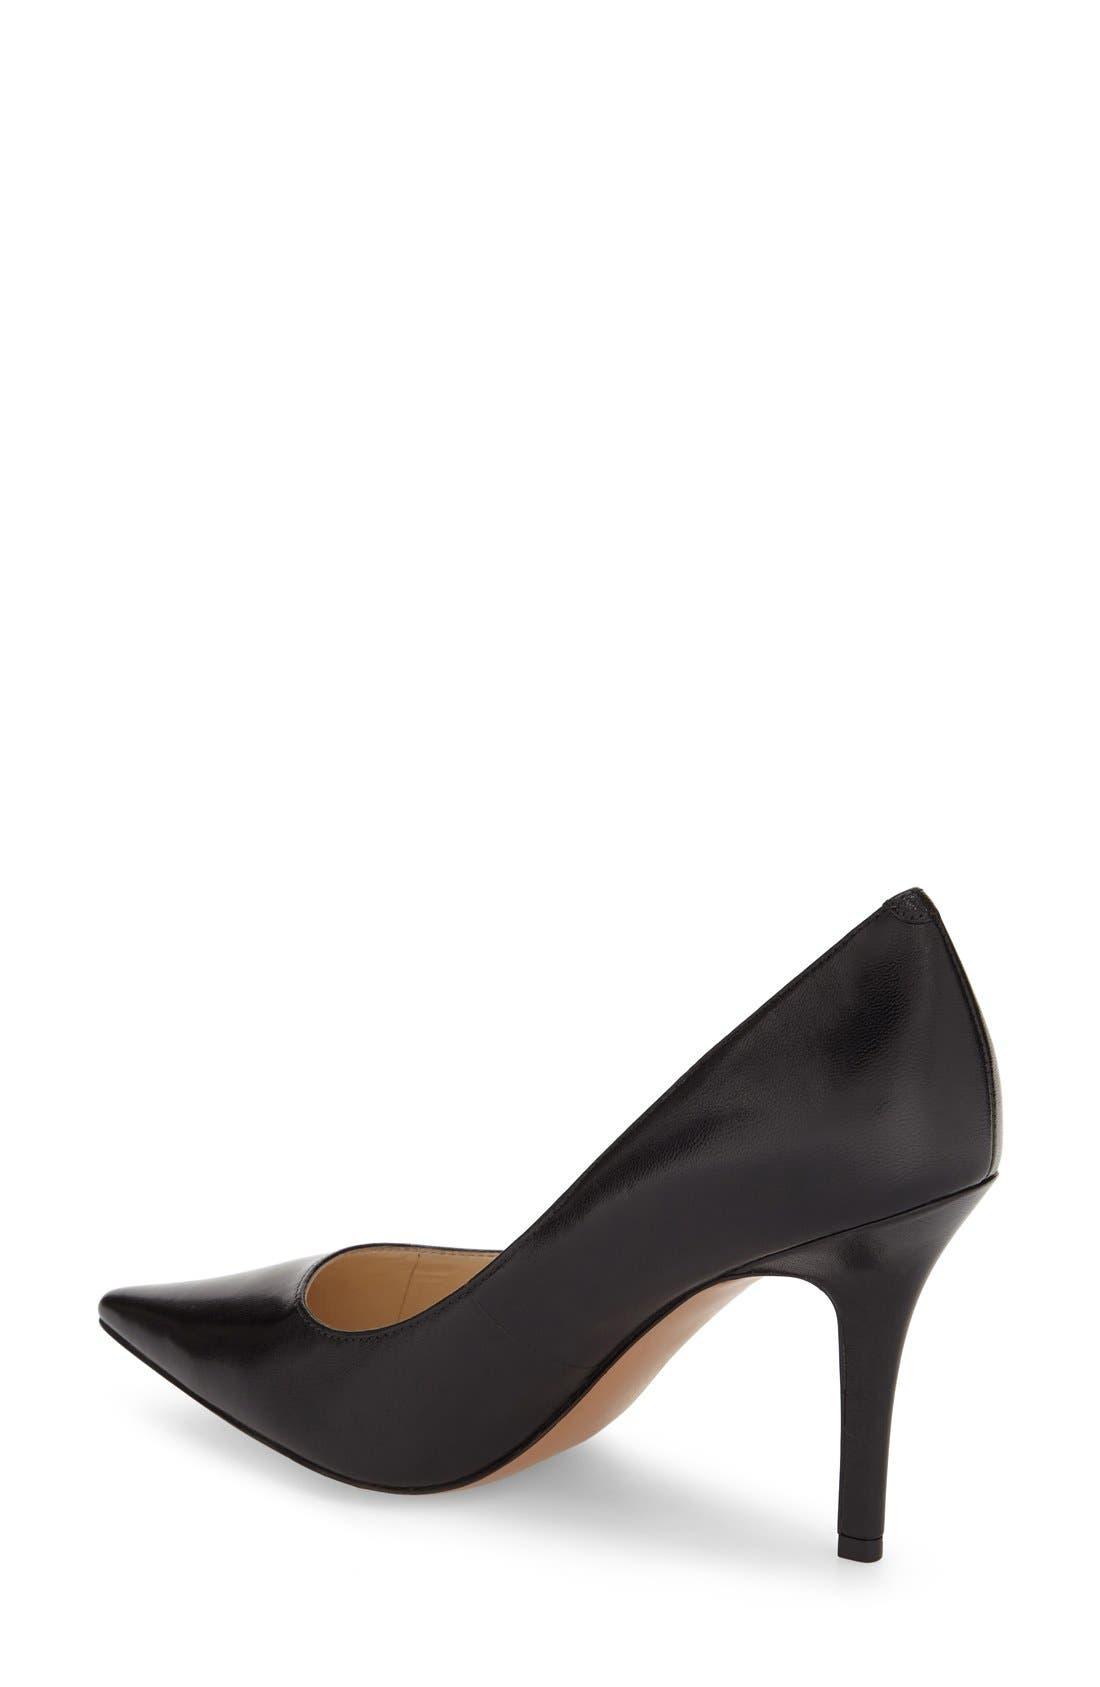 NINE WEST, 'Jackpot' Pointy Toe Pump, Alternate thumbnail 2, color, 001